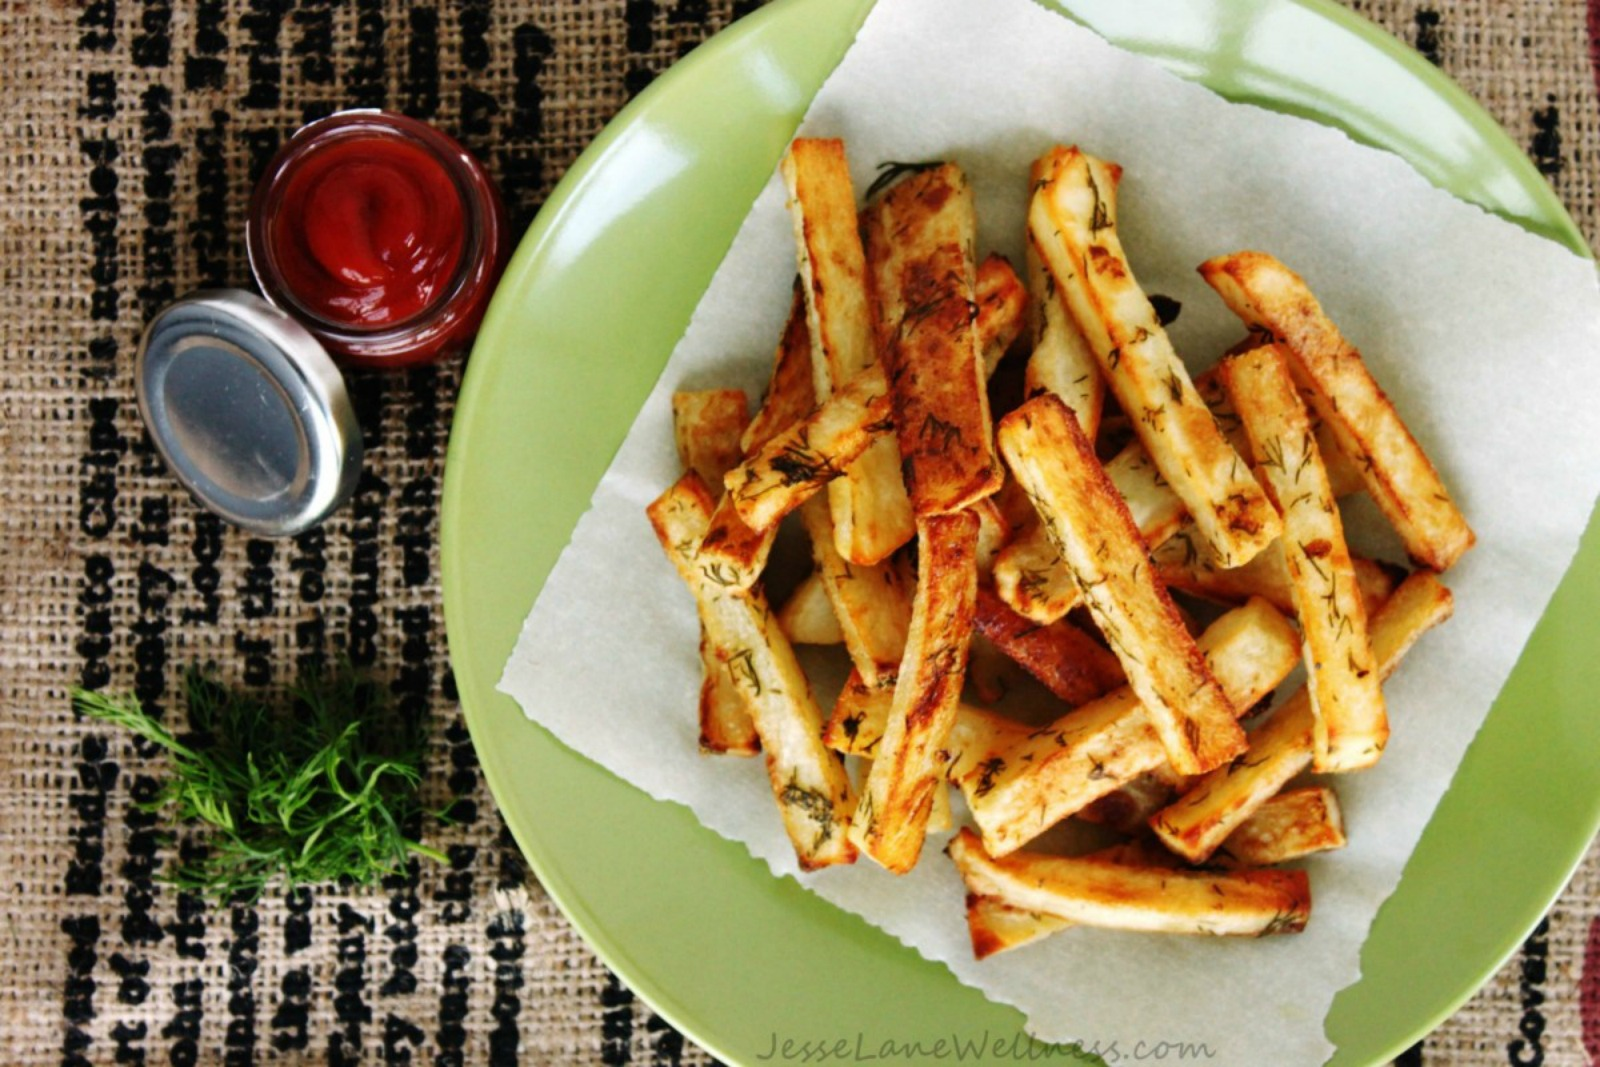 Add a Twist to Your Favorite Fried Food With These 20 Veggie Fries